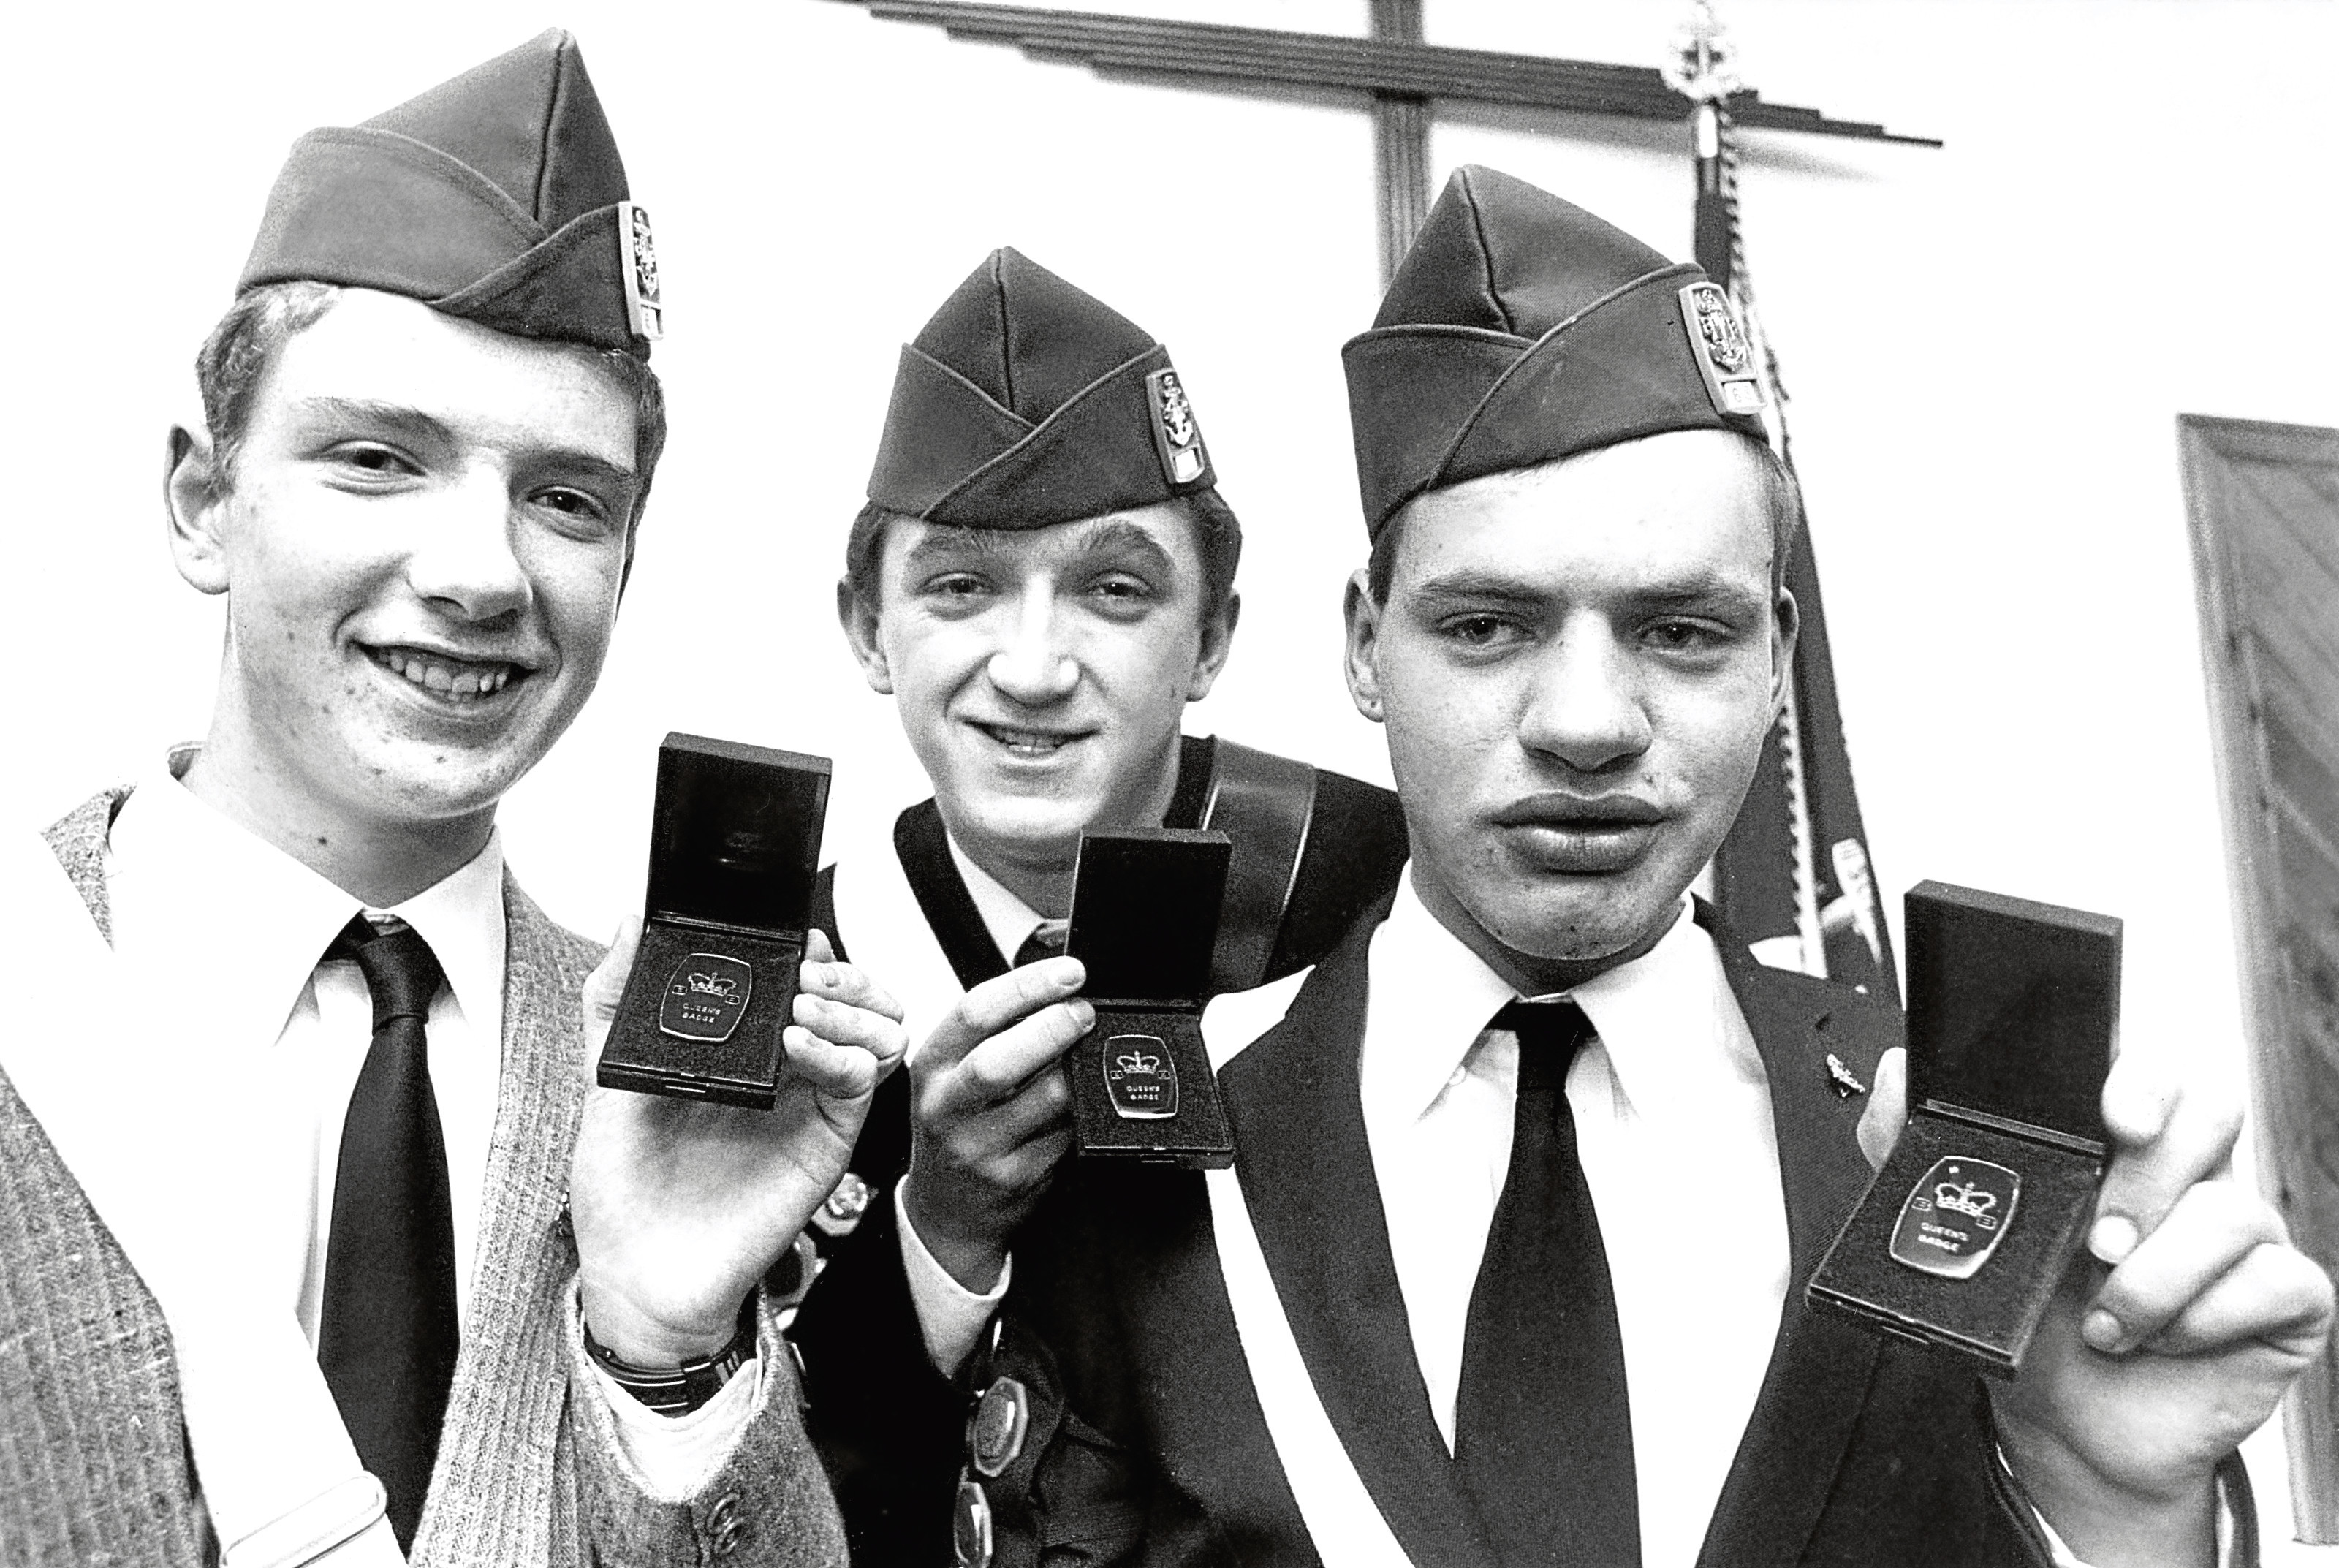 The 68th Bucksburn's , from left, Cpl John Rae, Cpl Richard Mitchell and Sgt Scott Taylor with their Queen's Badges.